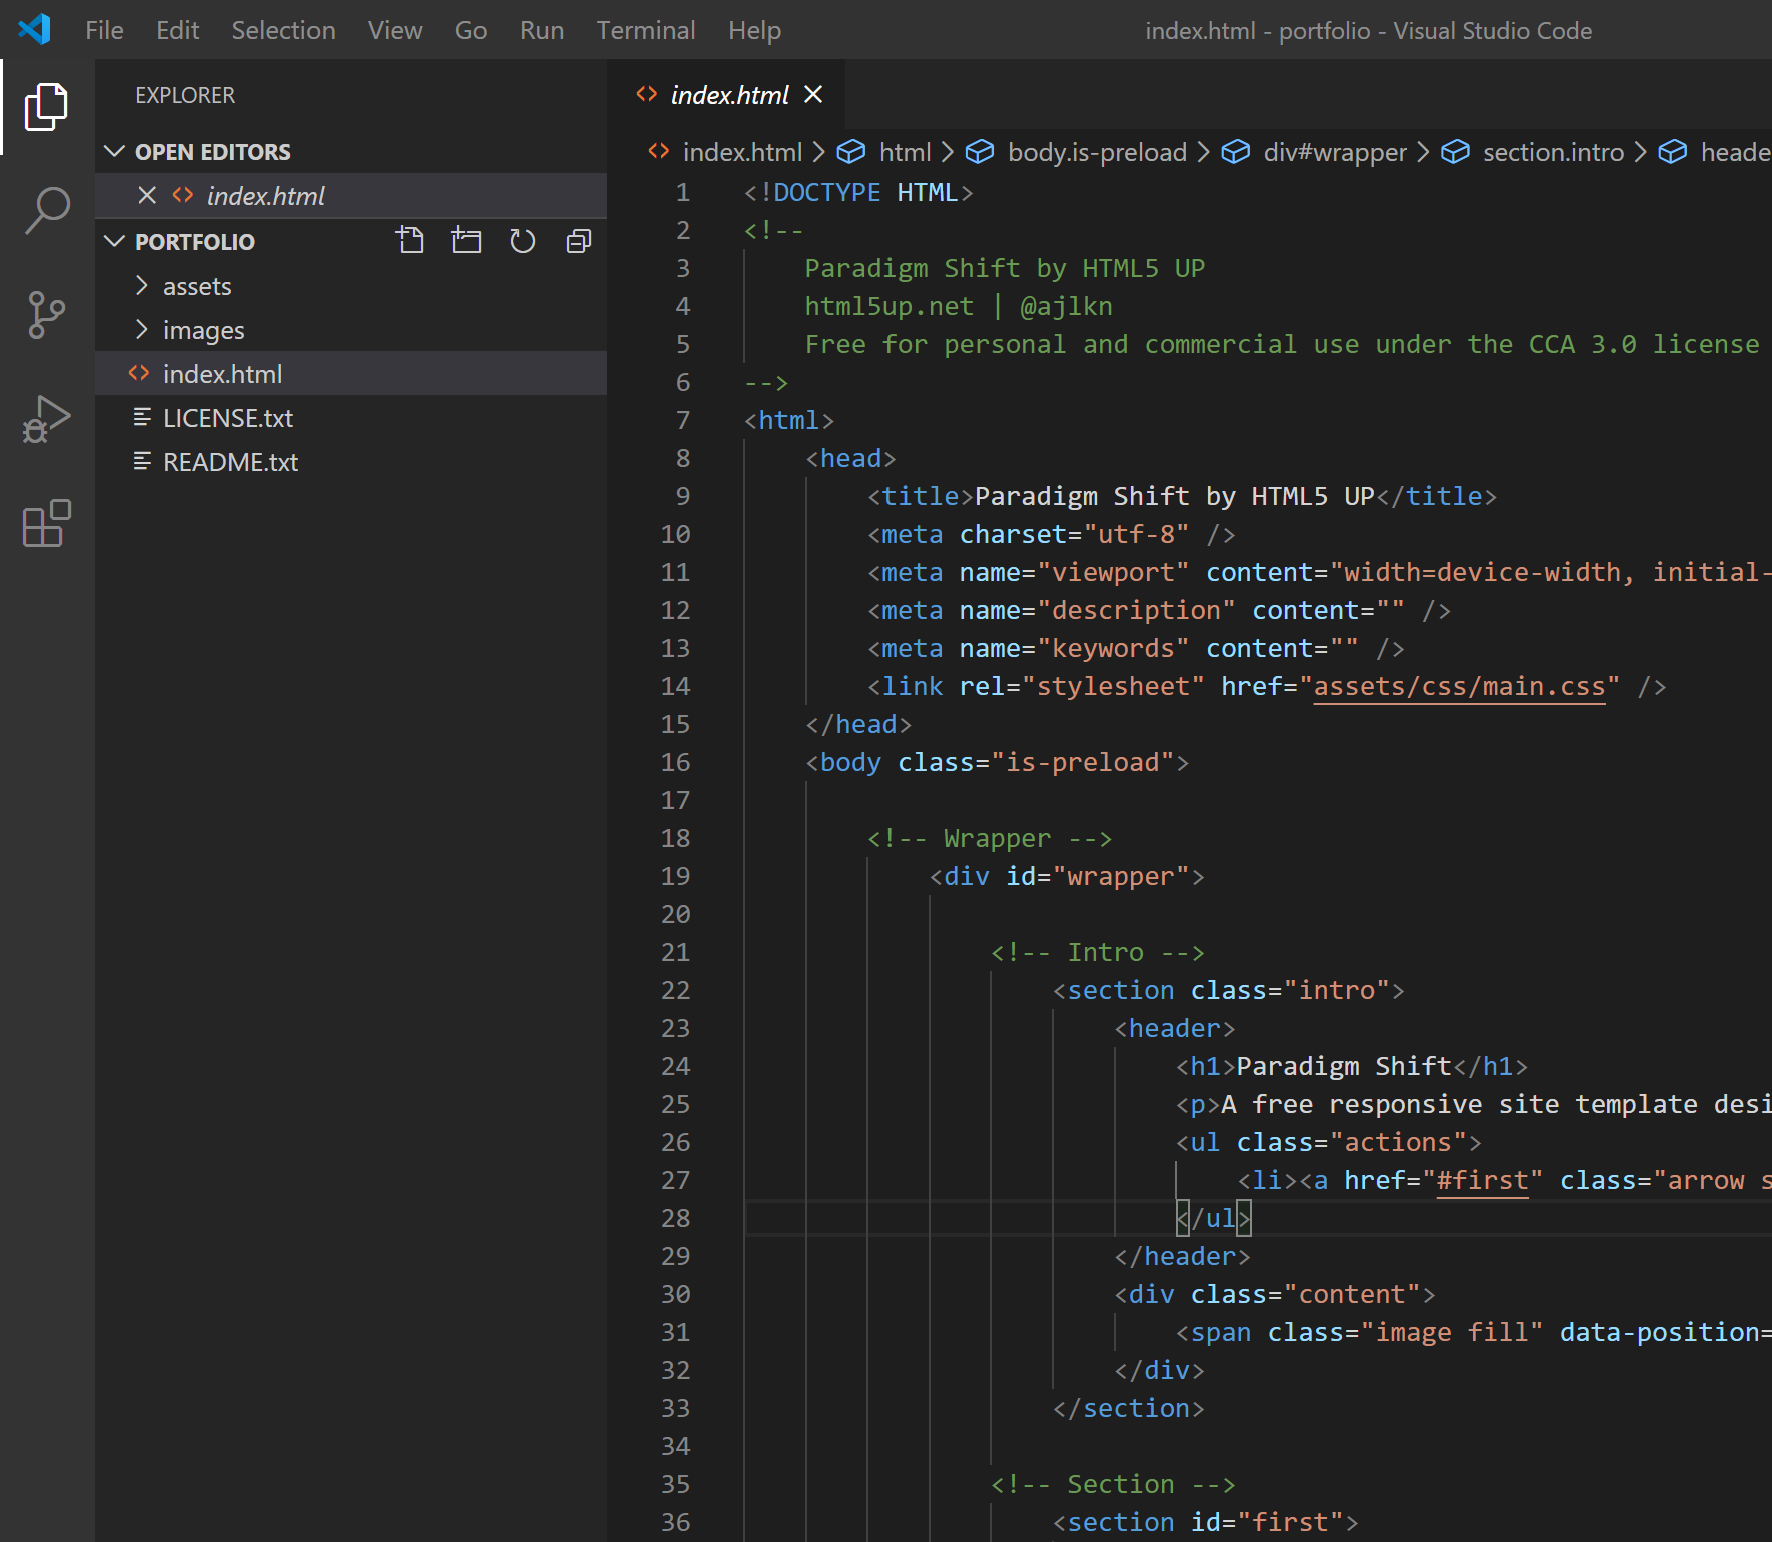 Index.html opened in VS Code